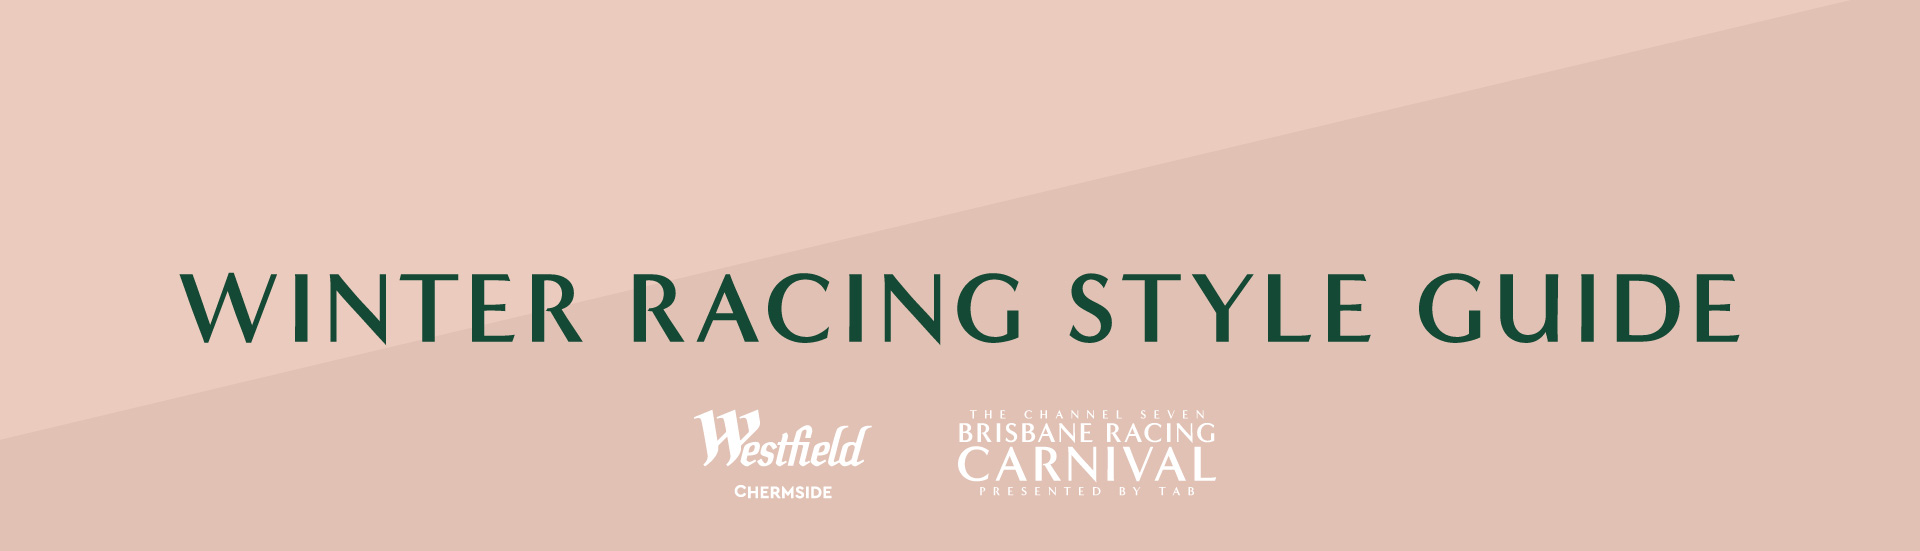 Westfield Chermside Winter Style Guide | Brisbane Racing Club